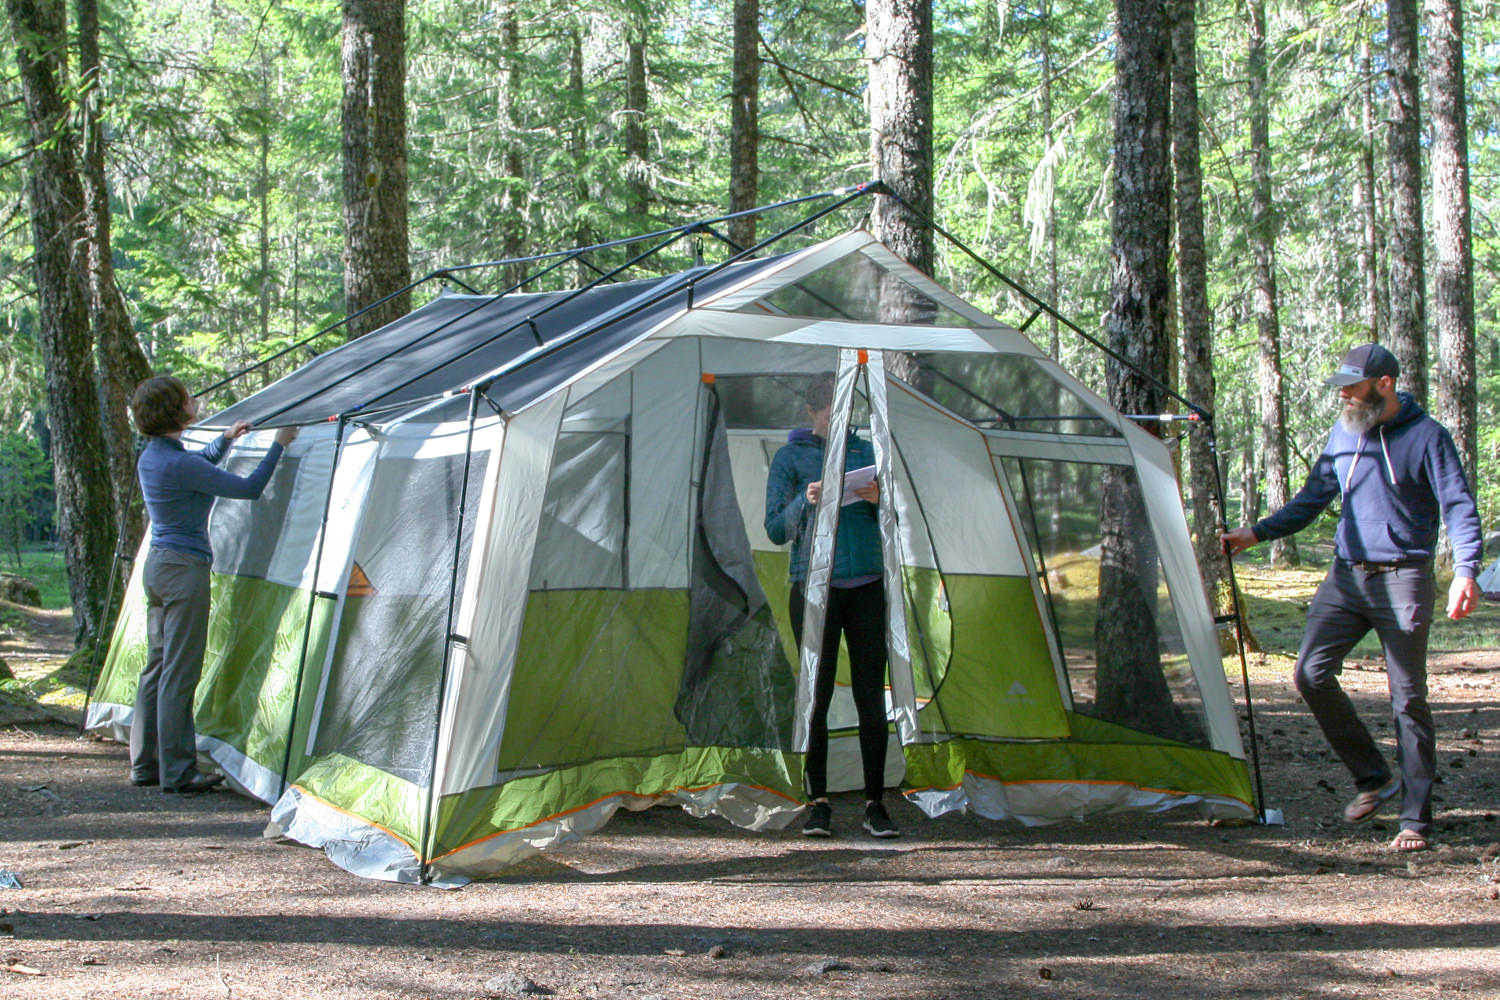 The  Ozark Trail 8-Person Family Cabin's  setup is more complicated and multiple people are needed